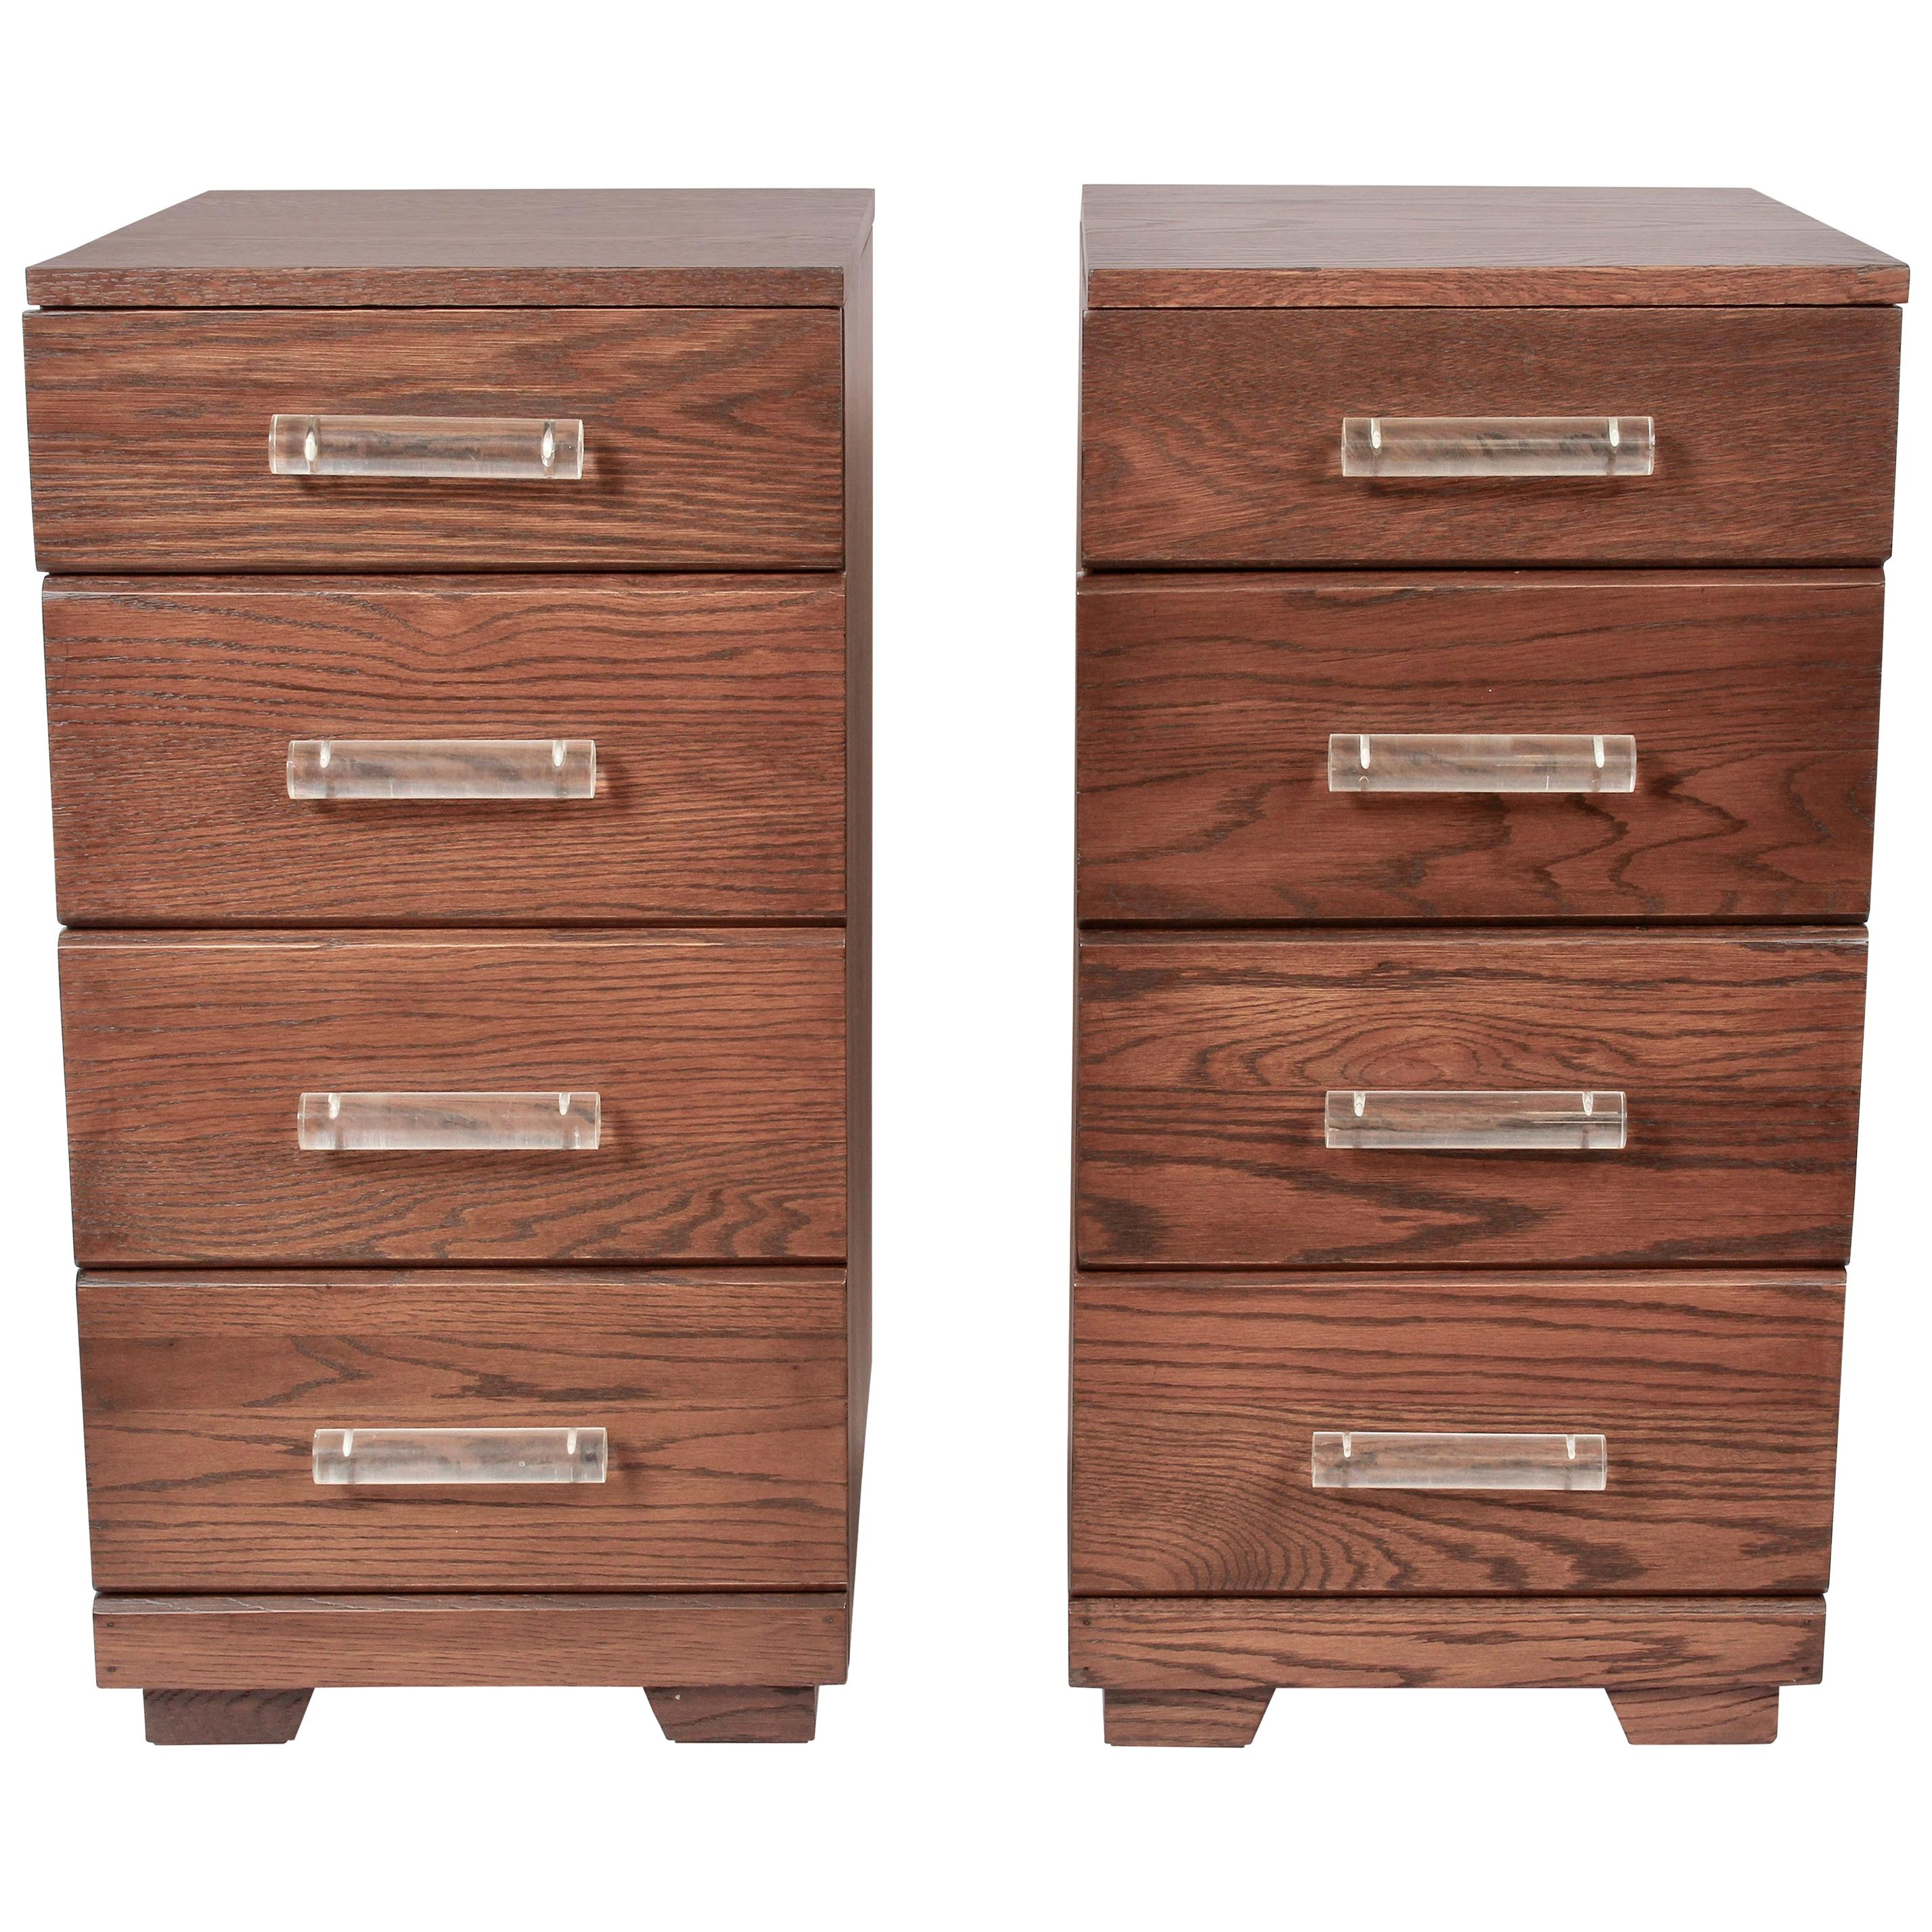 Pair of Raymond Loewy for Mengel Four Drawer Nightstands with Lucite Handles